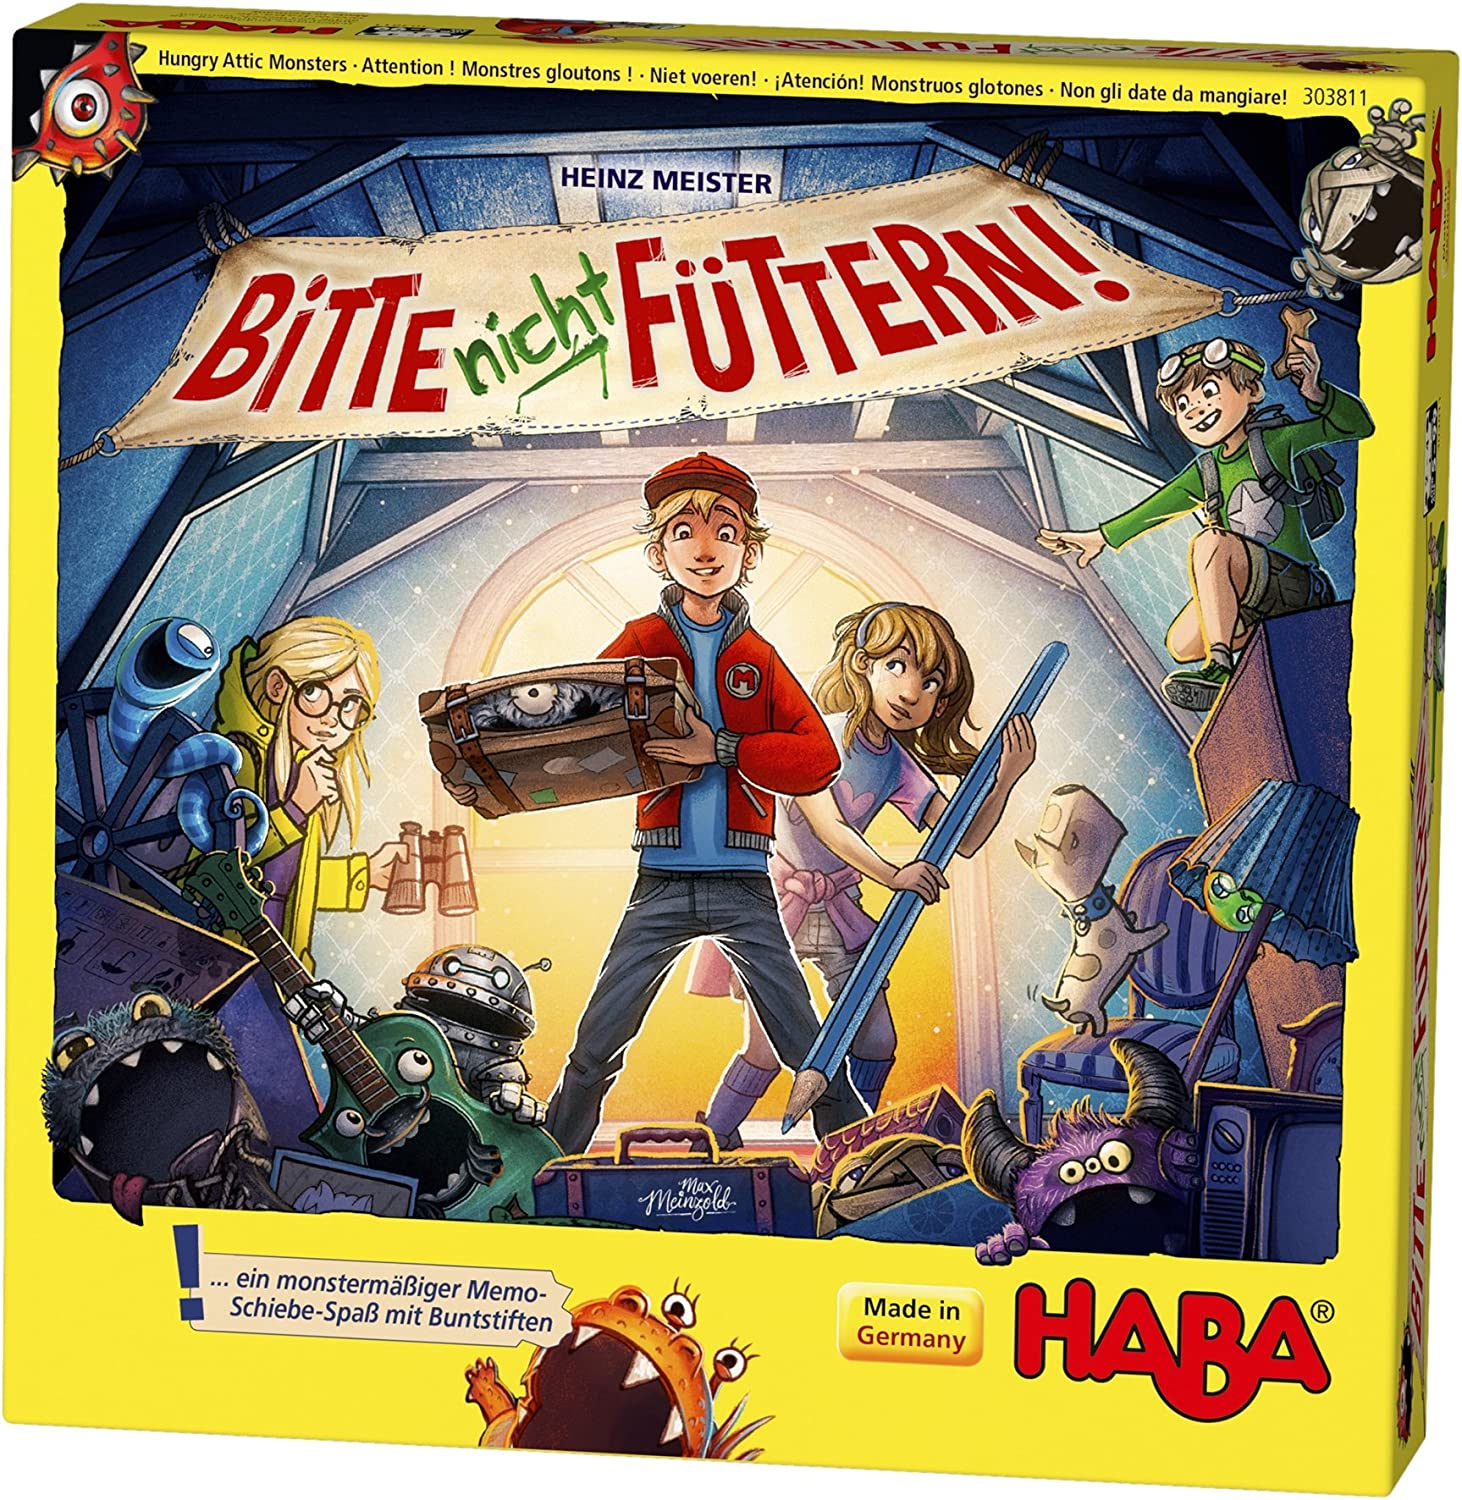 HABA Hungry Attic Monsters sliding memory game olds that's B07C5HMXS9 monstrously HABA fun, game for 5 year olds 303992 B07C5HMXS9, 新上五島町:2679e0d6 --- fancycertifieds.xyz